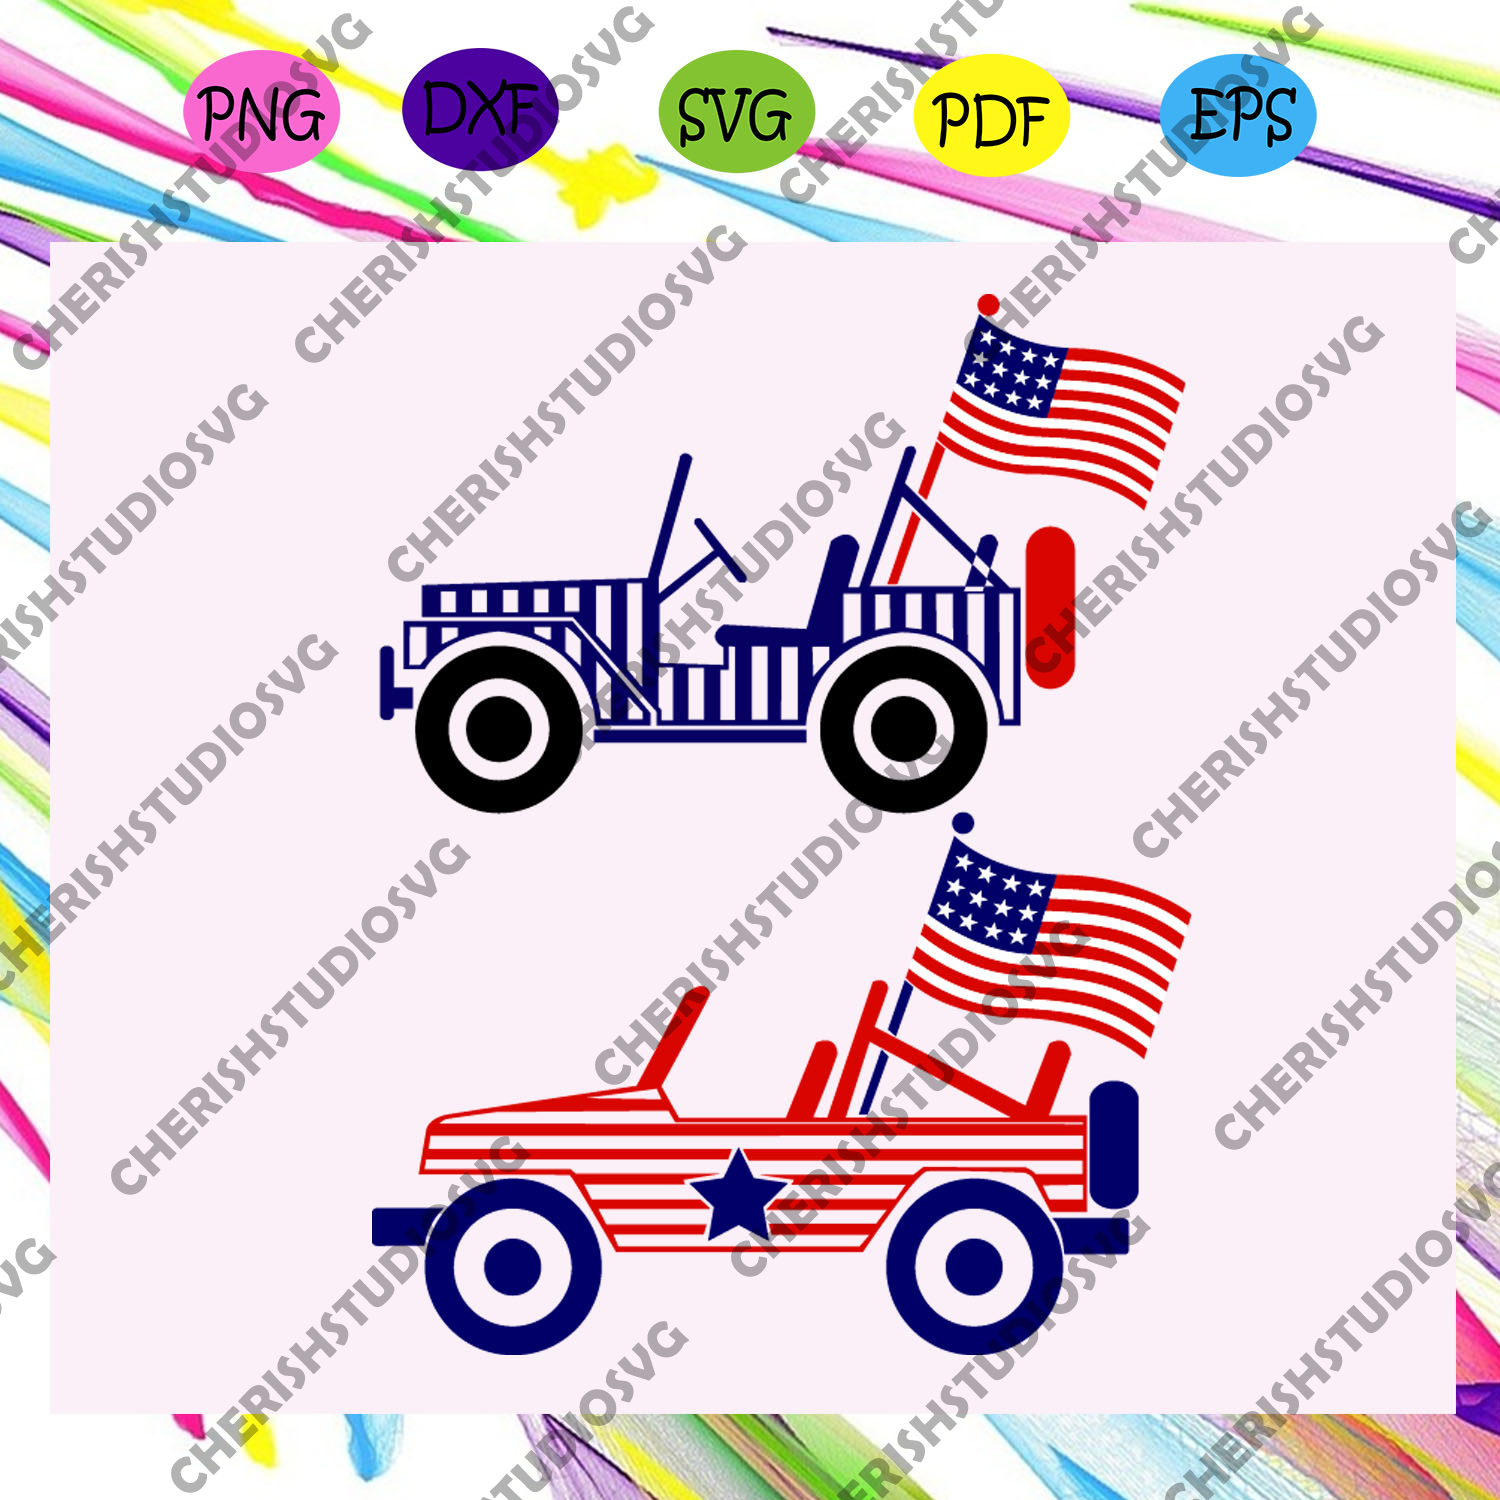 Car america flag, camping lover,independence day svg,american flag, happy 4th of july svg,patriotic svg, independence day gift,For Silhouette, Files For Cricut, SVG, DXF, EPS, PNG Instant Download